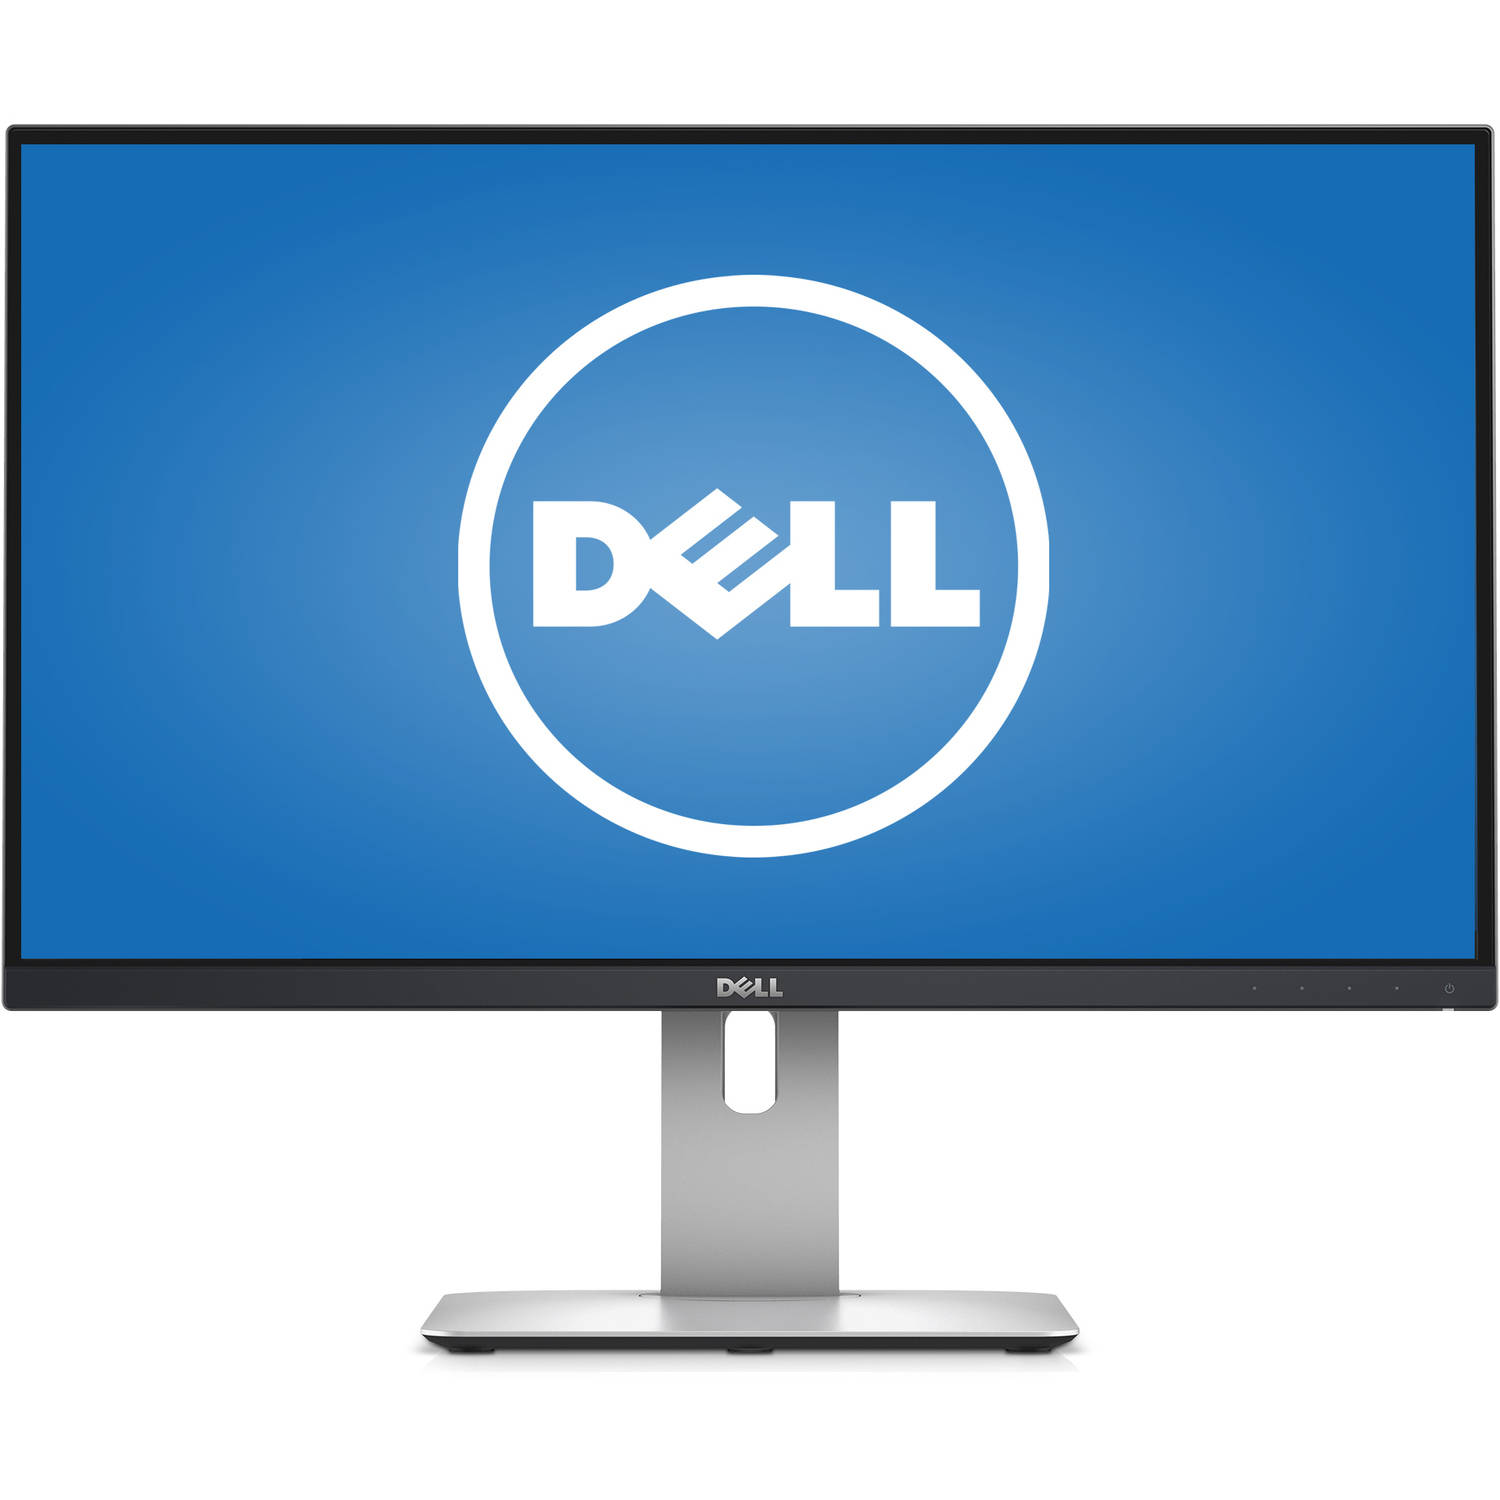 Dell SE2717HX 27 in. LCD Full HD 1920x1080 6ms, HDMI & VGA Monitor